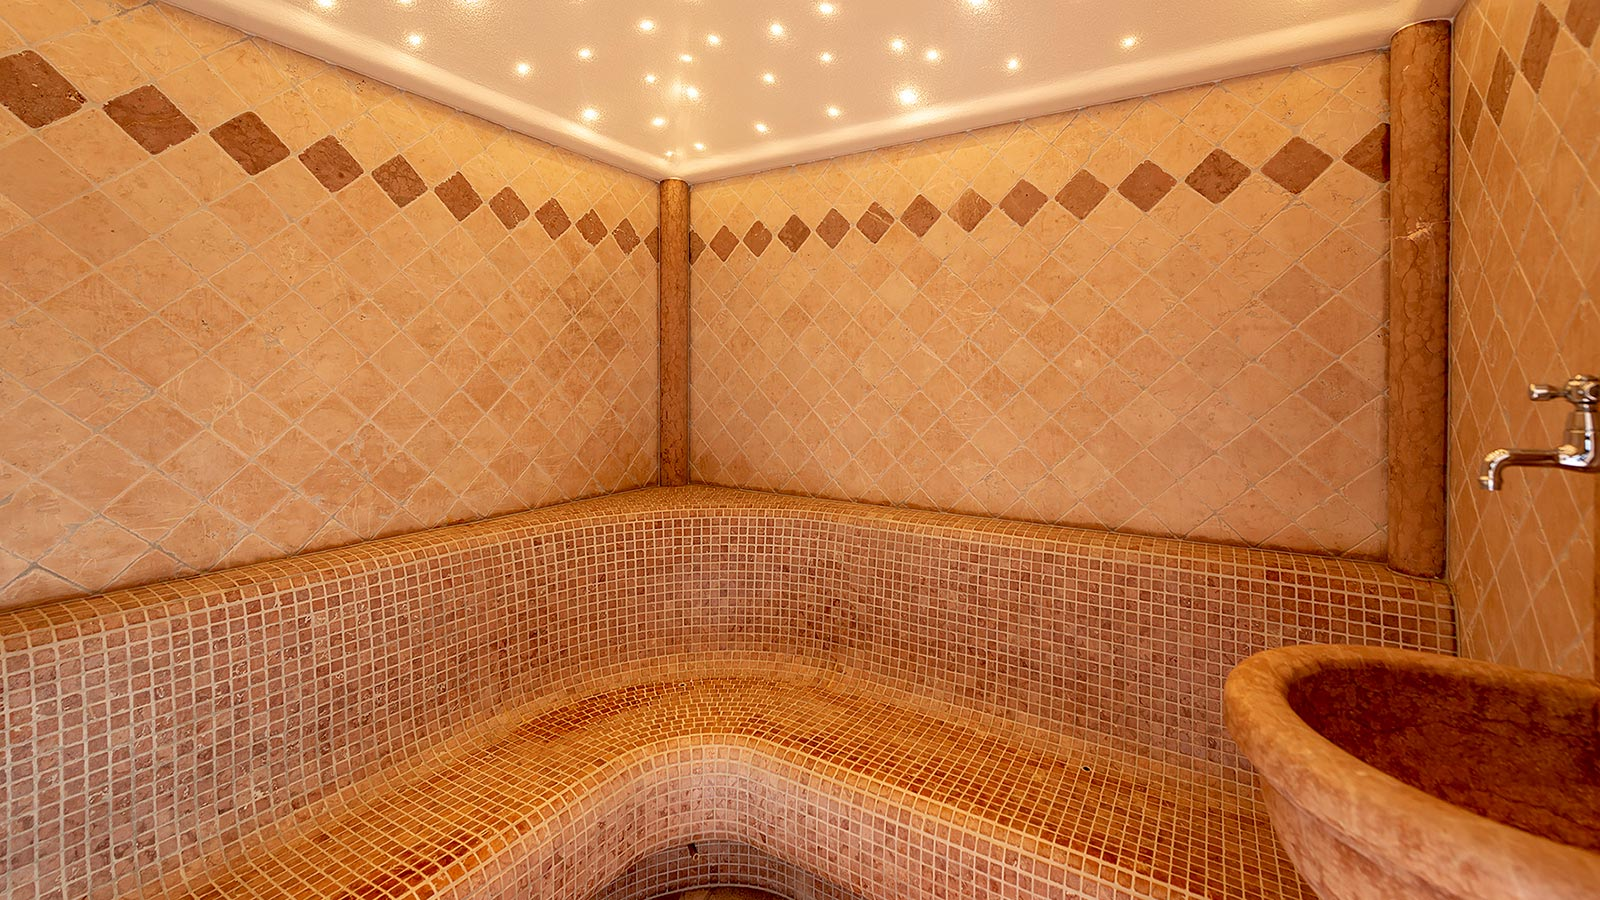 Detail of the Turkish bath at Residence Antares in Andalo